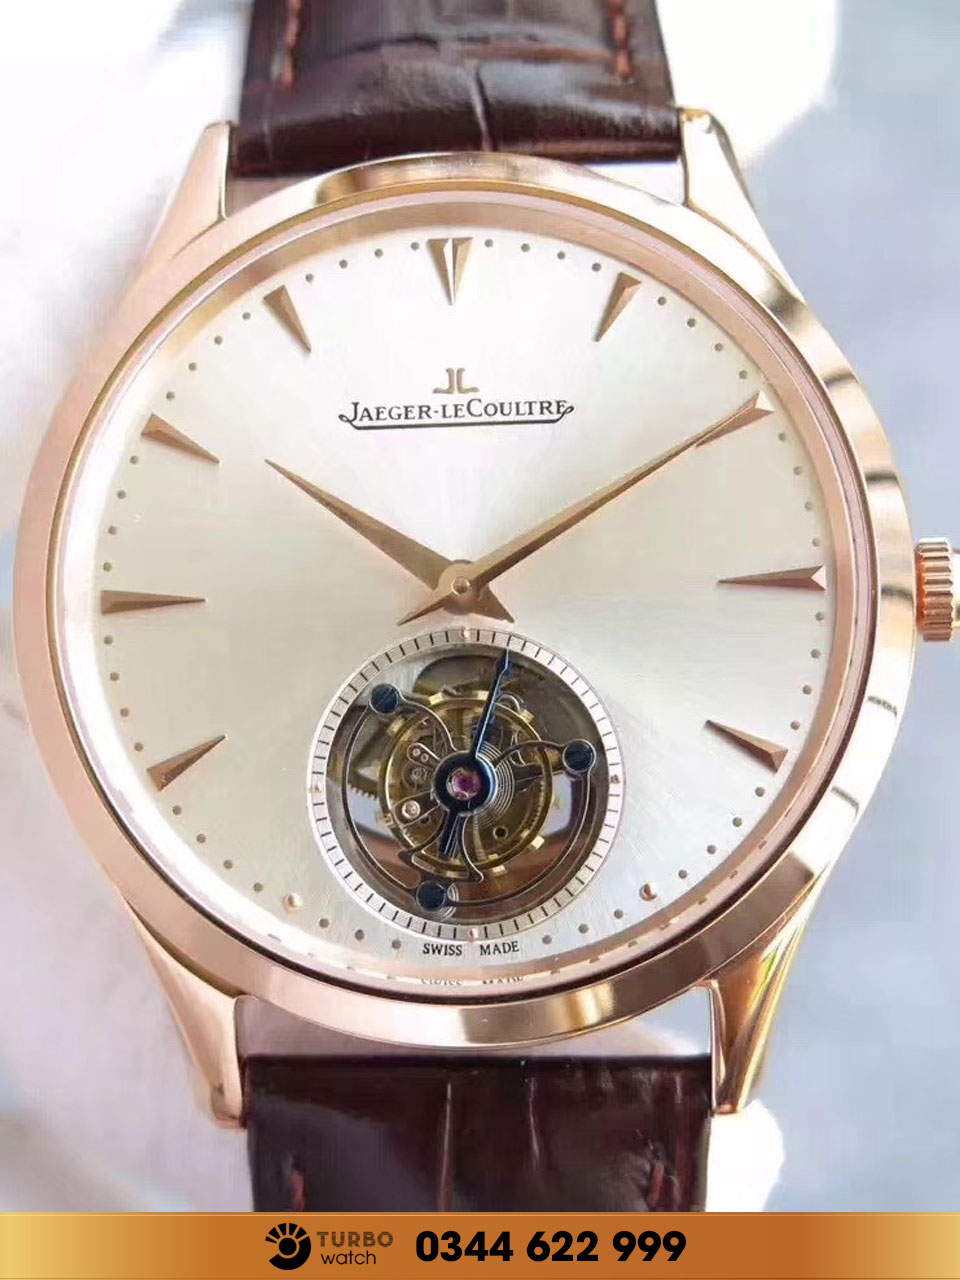 Jaeger-Lecoultre reveals the Master Ultra Thin Tourbillon in pink gold replica1:1 CAO CẤP